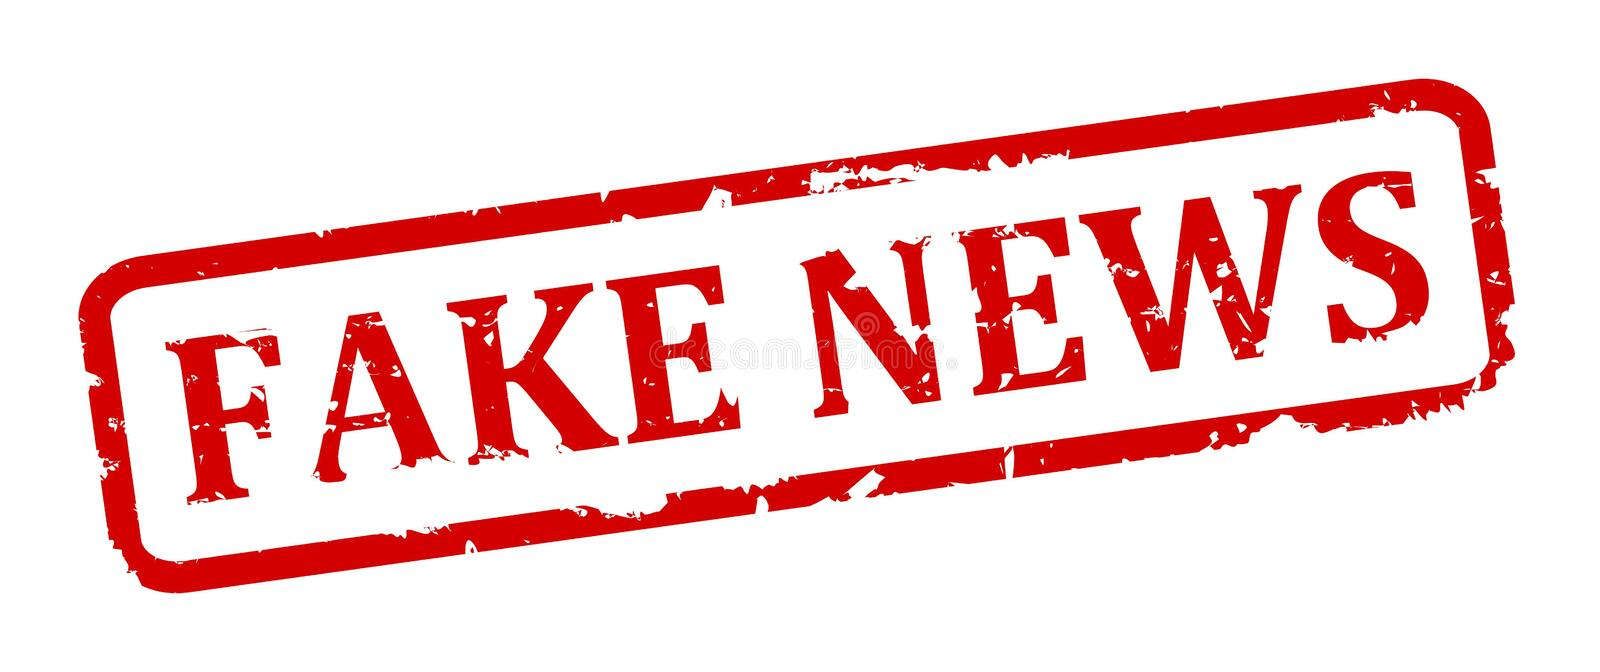 Scratched oval stamp with inscription - fake news. Vector stock illustration